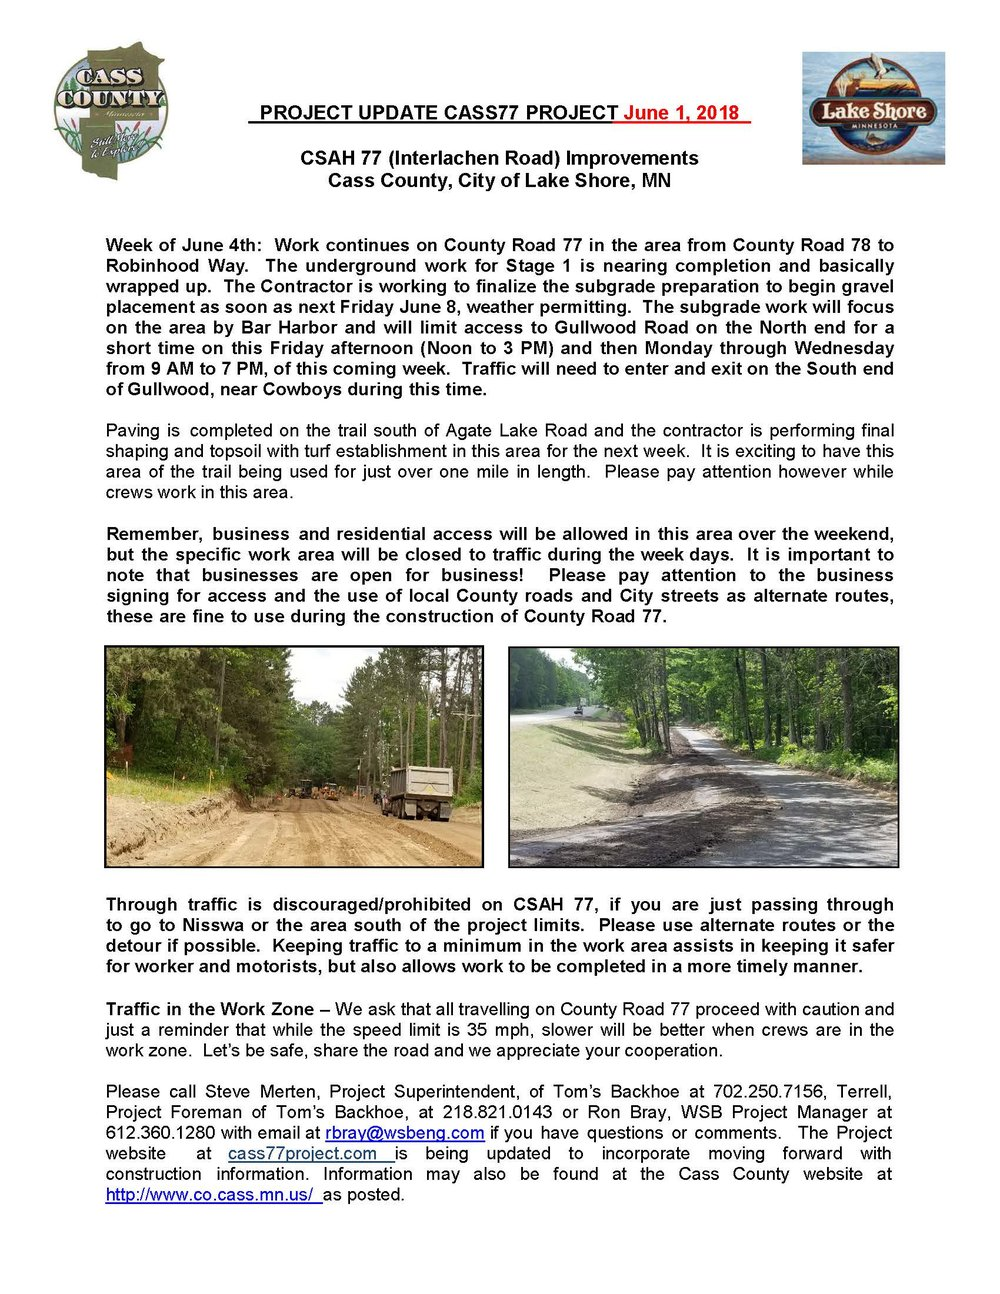 Cass County CSAH 77 Project update June 1 2018 (003).jpg